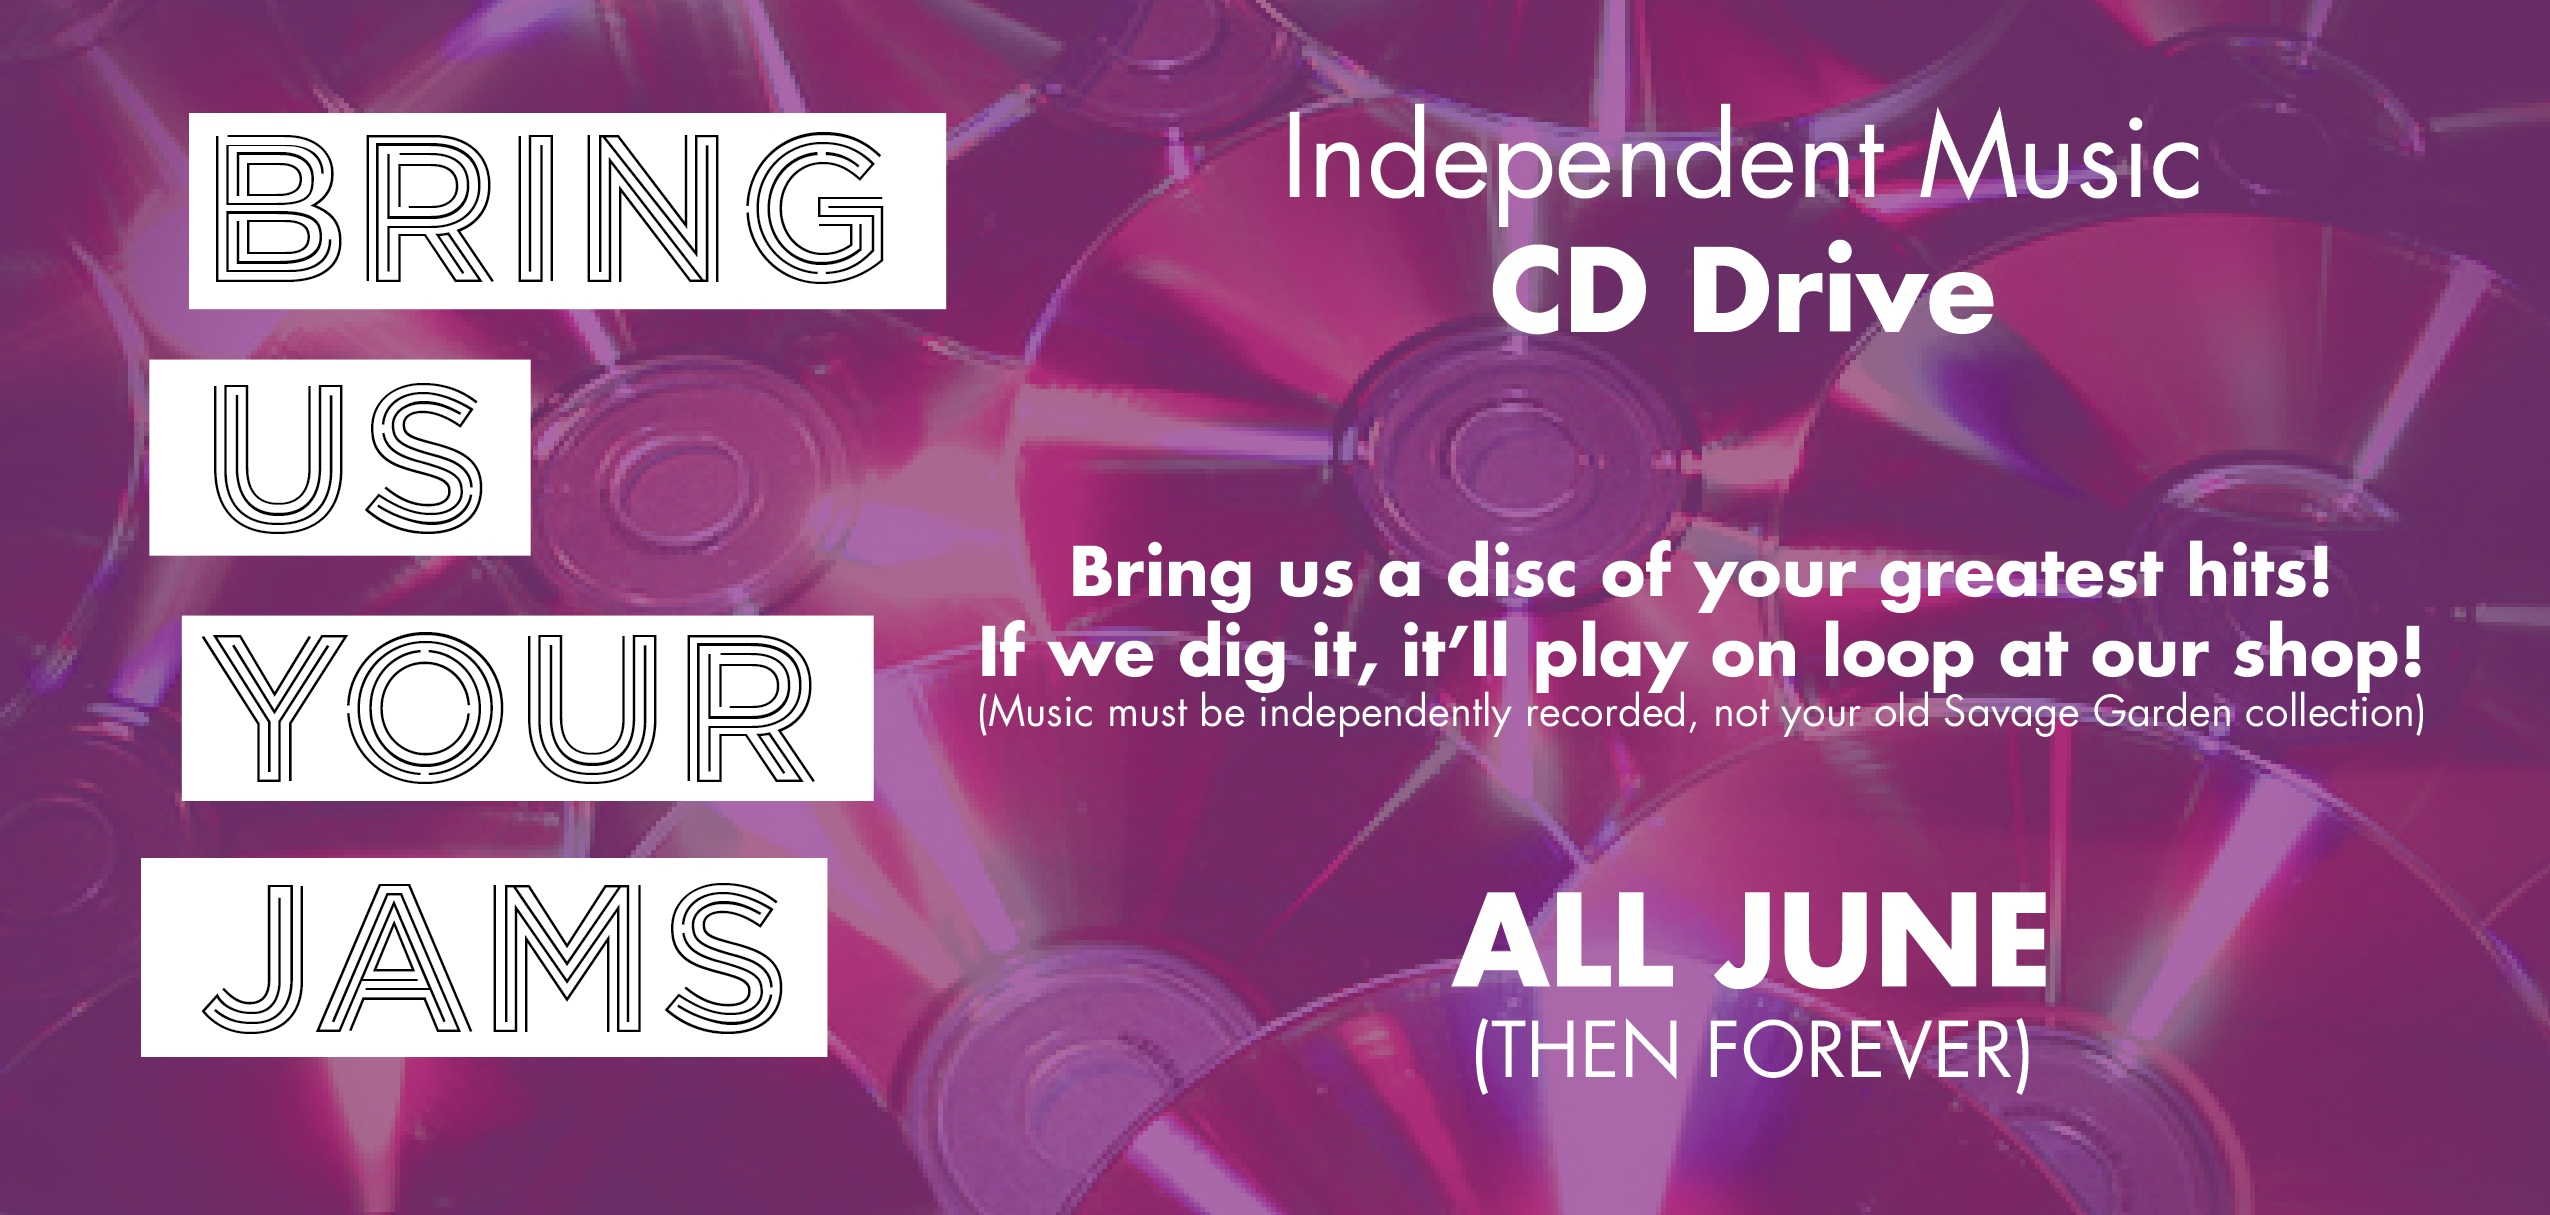 Teatotaller event: BRING US YO JAMS: Independent Music CD Drive